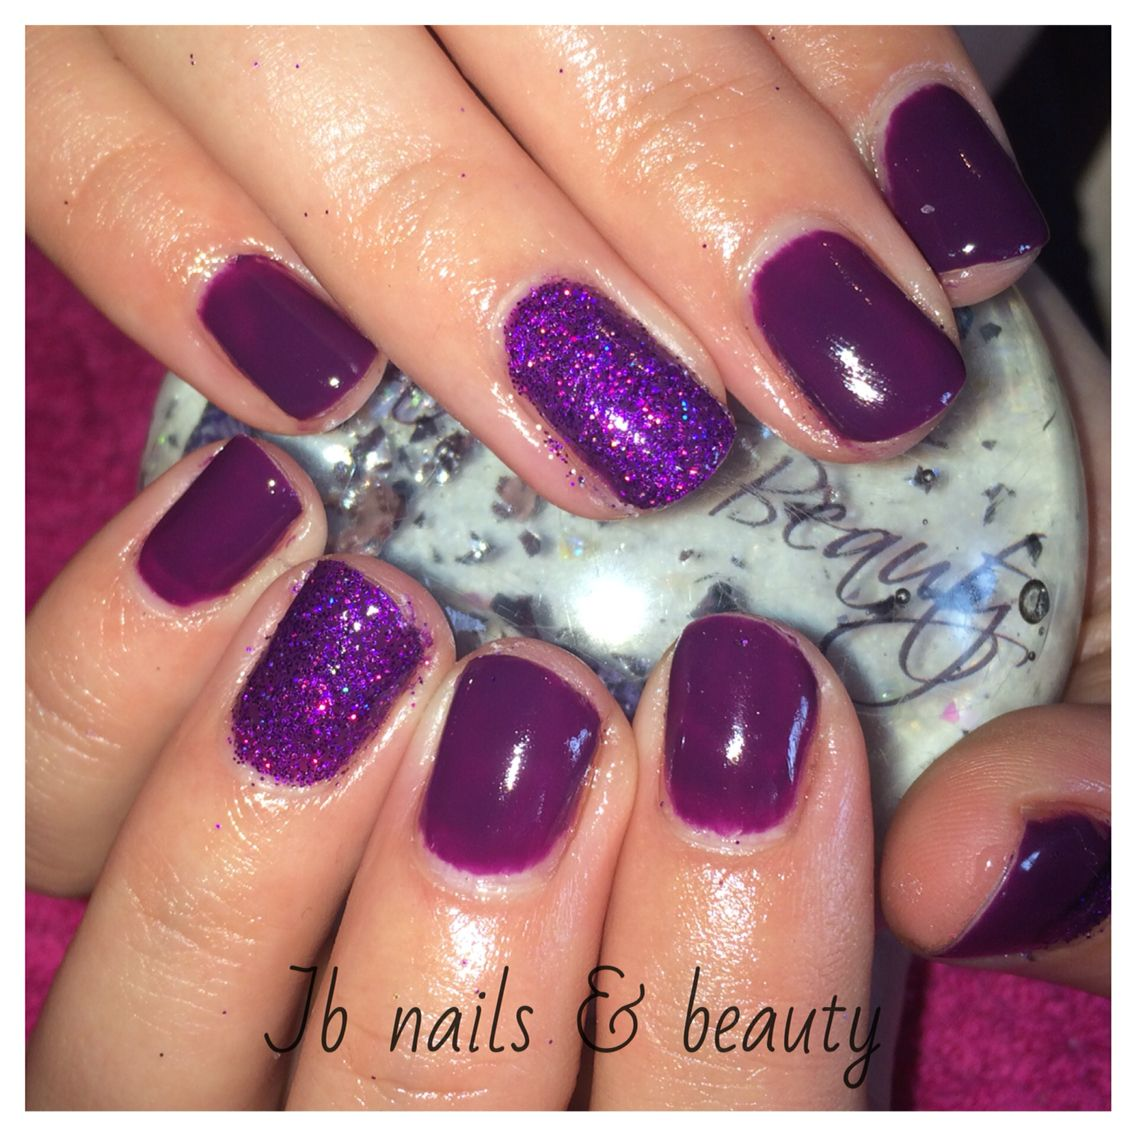 Dark purple gel polish on natural nails with added glitter | My ...